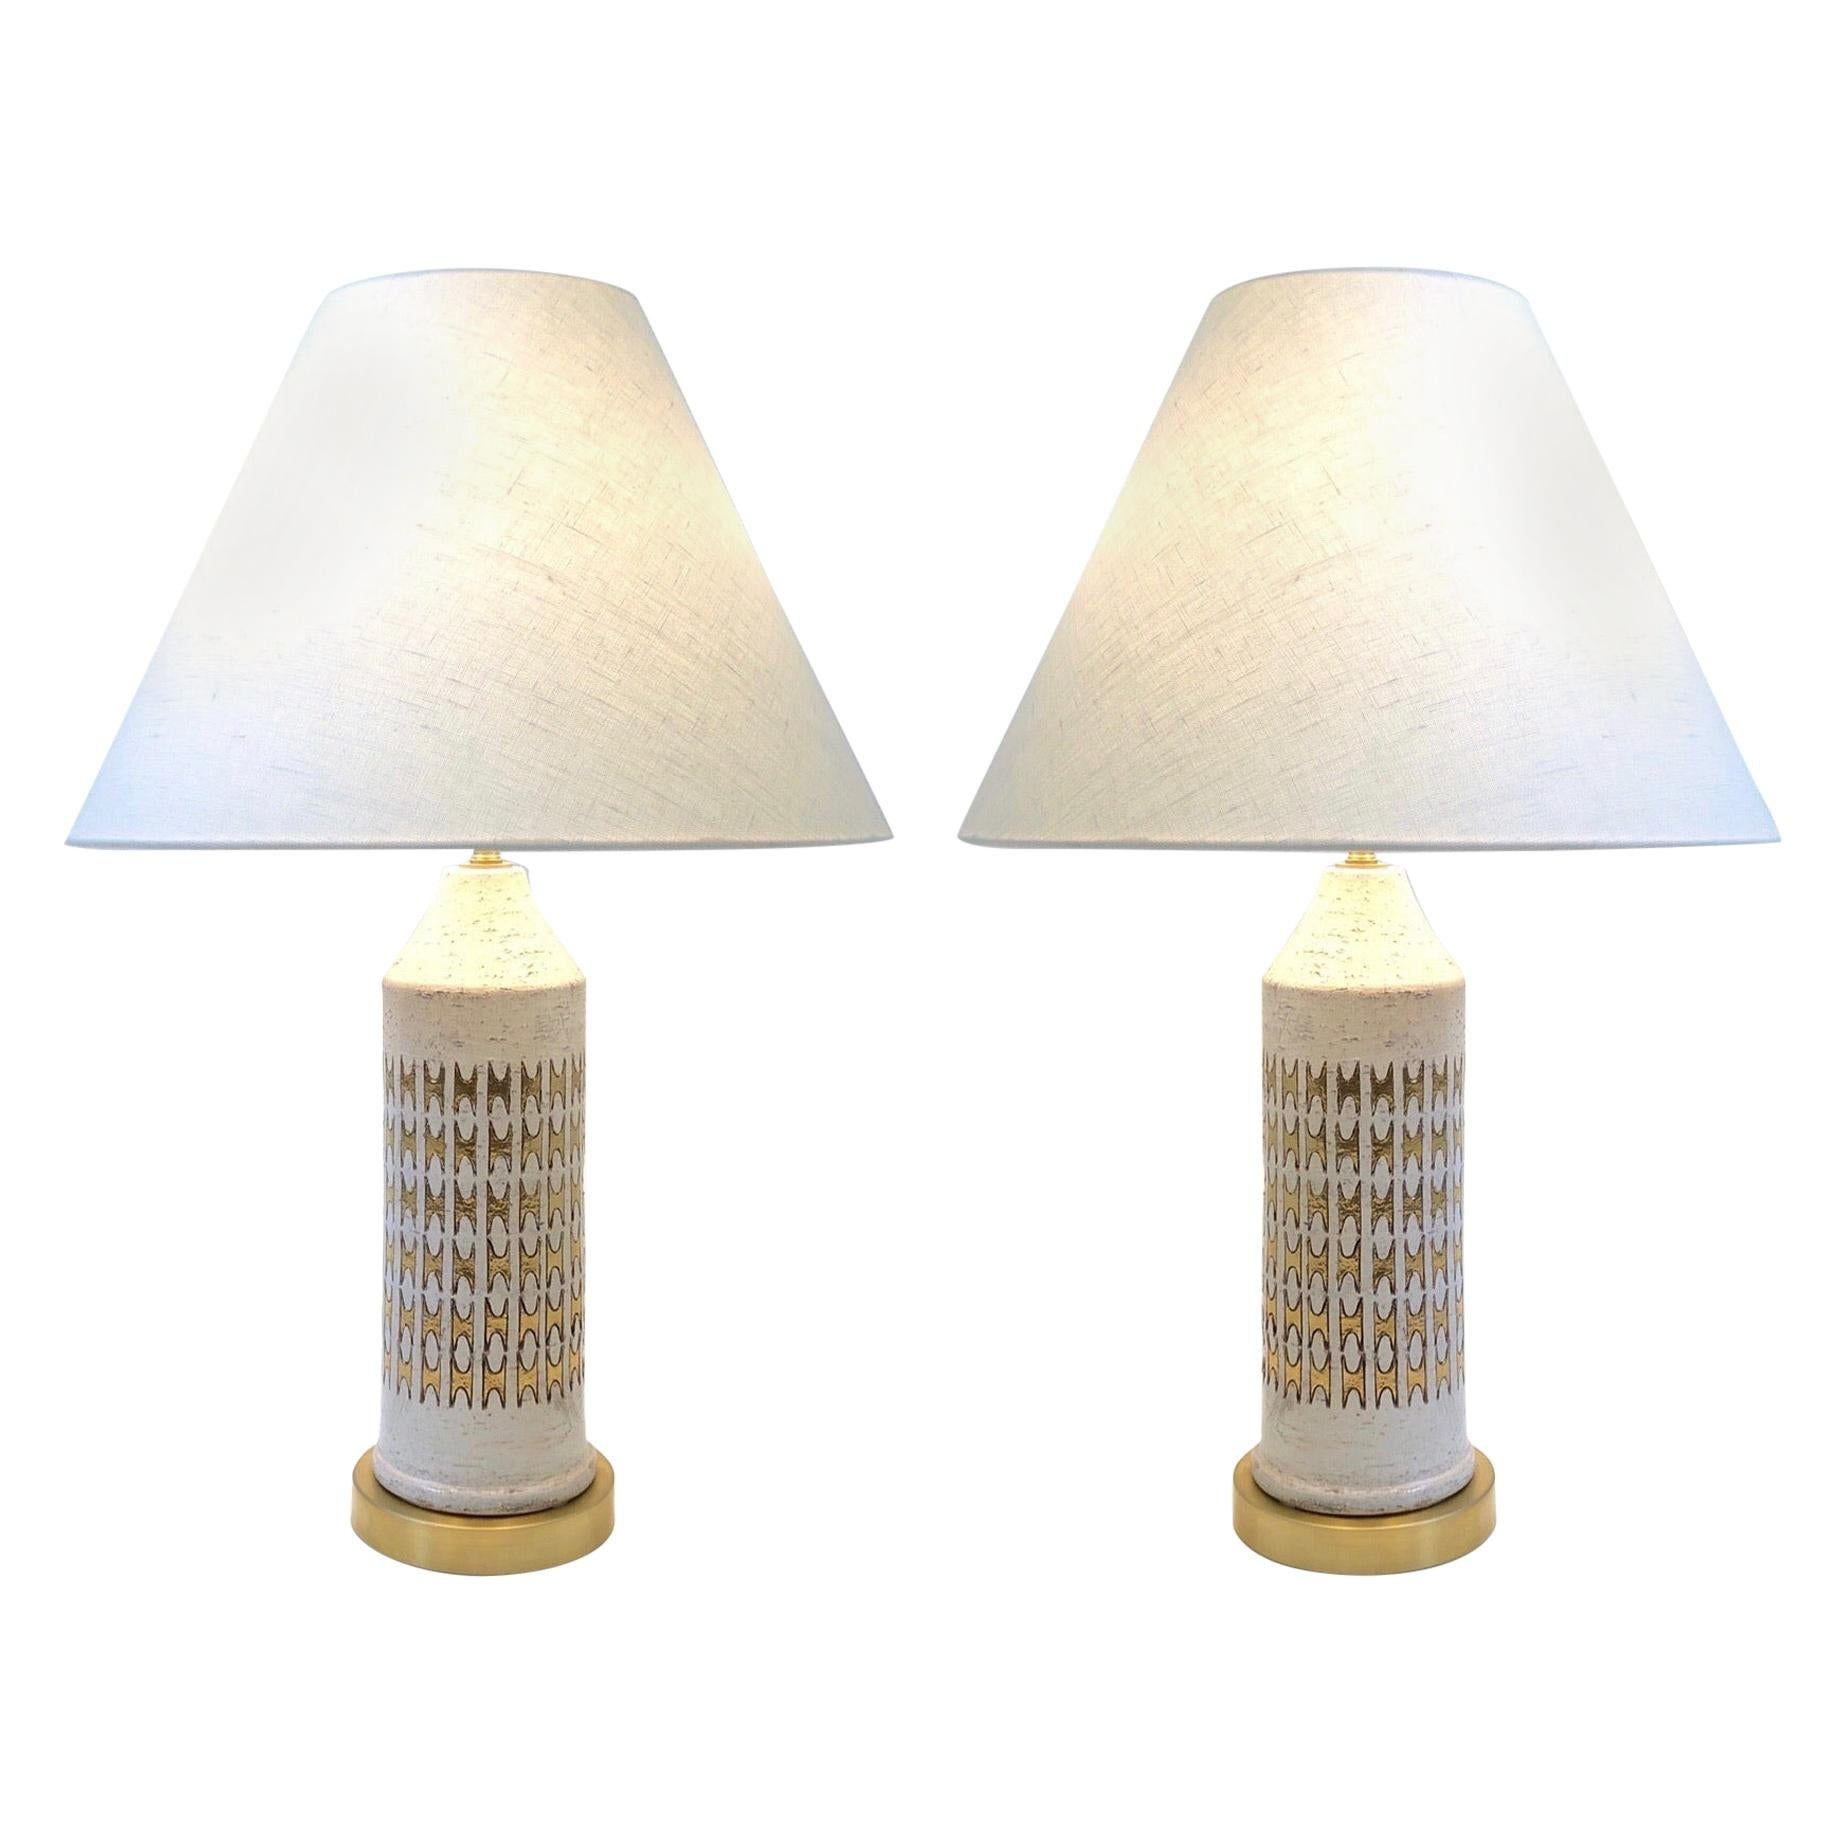 Pair of Italian Ceramic and Brass Table Lamps by Bitossi